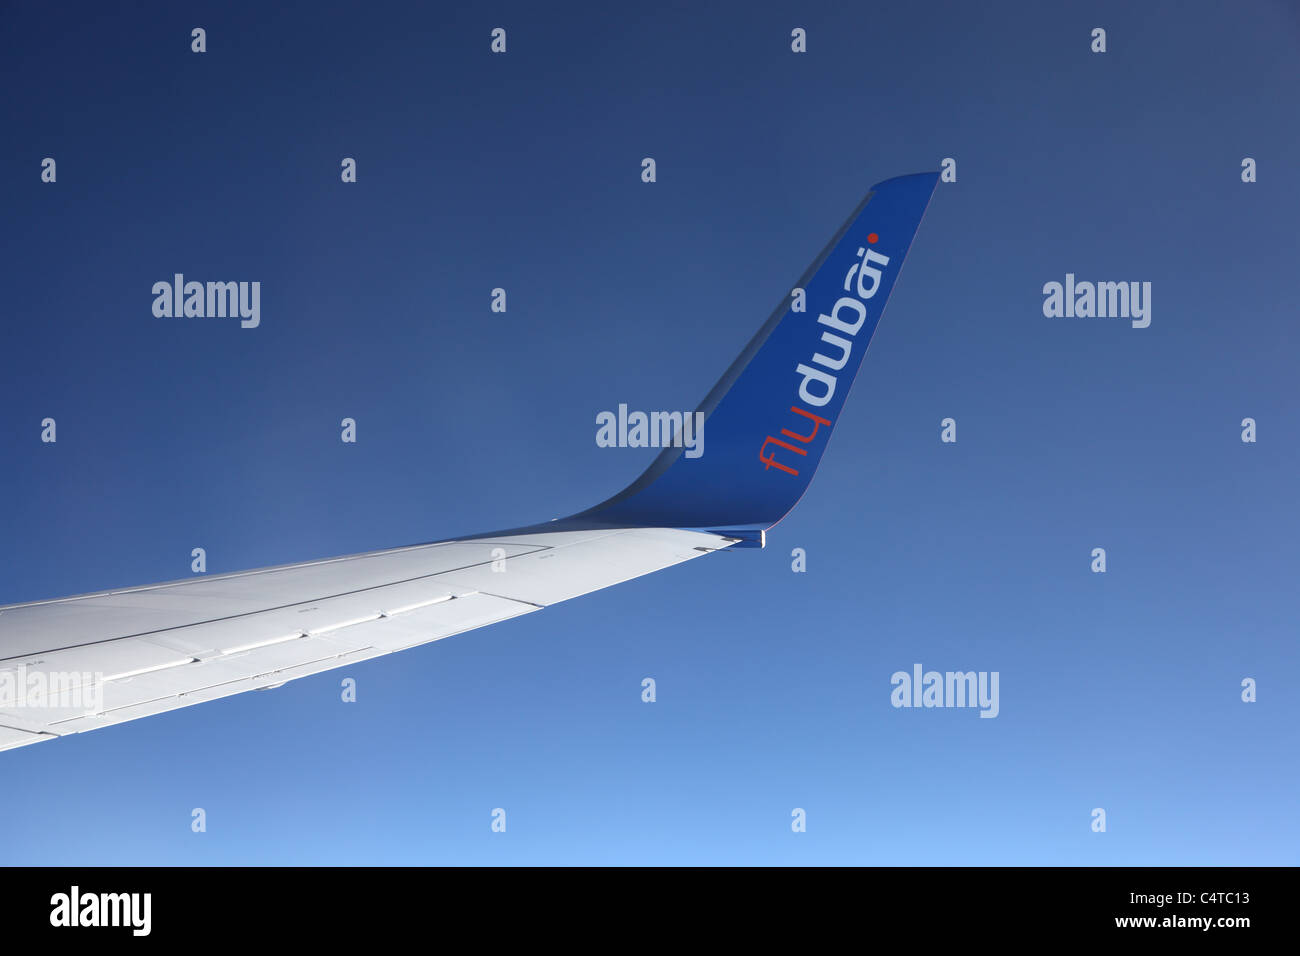 Wing of the FlyDubai airplane during a flight. Photo taken at 26th of Mai 2011 - Stock Image